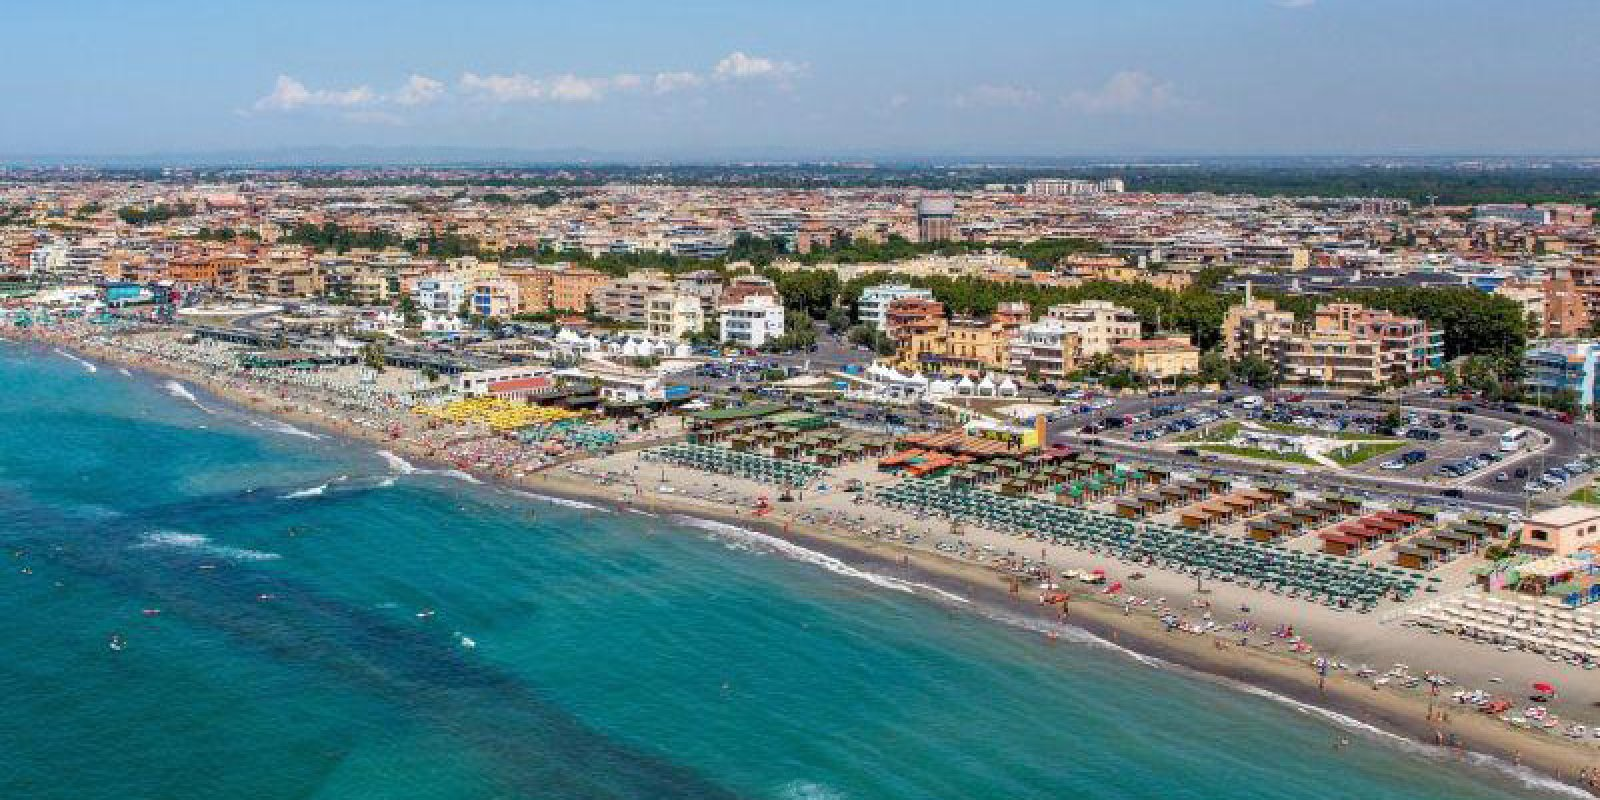 Ostia, the Sea of Rome